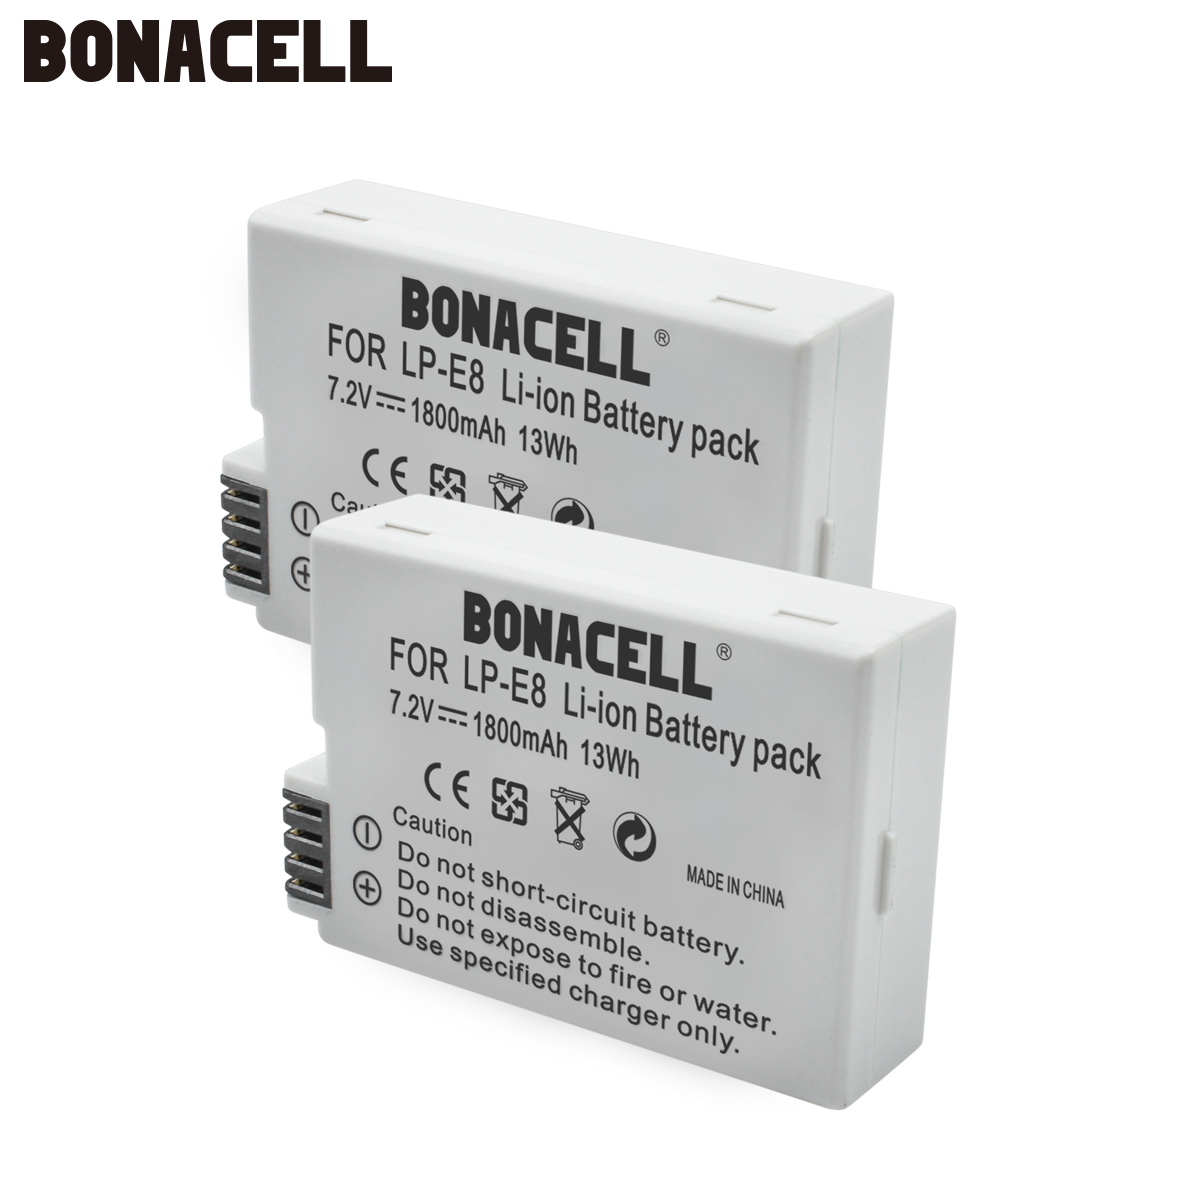 Bonacell V LP E8 LPE8 Camera <font><b>Battery</b></font> For <font><b>Canon</b></font> EOS <font><b>550D</b></font> 600D 650D 700D Kiss X4 X5 X6i X7i Rebel T2i T3i T4i T5 <font><b>Batteries</b></font> L50 image